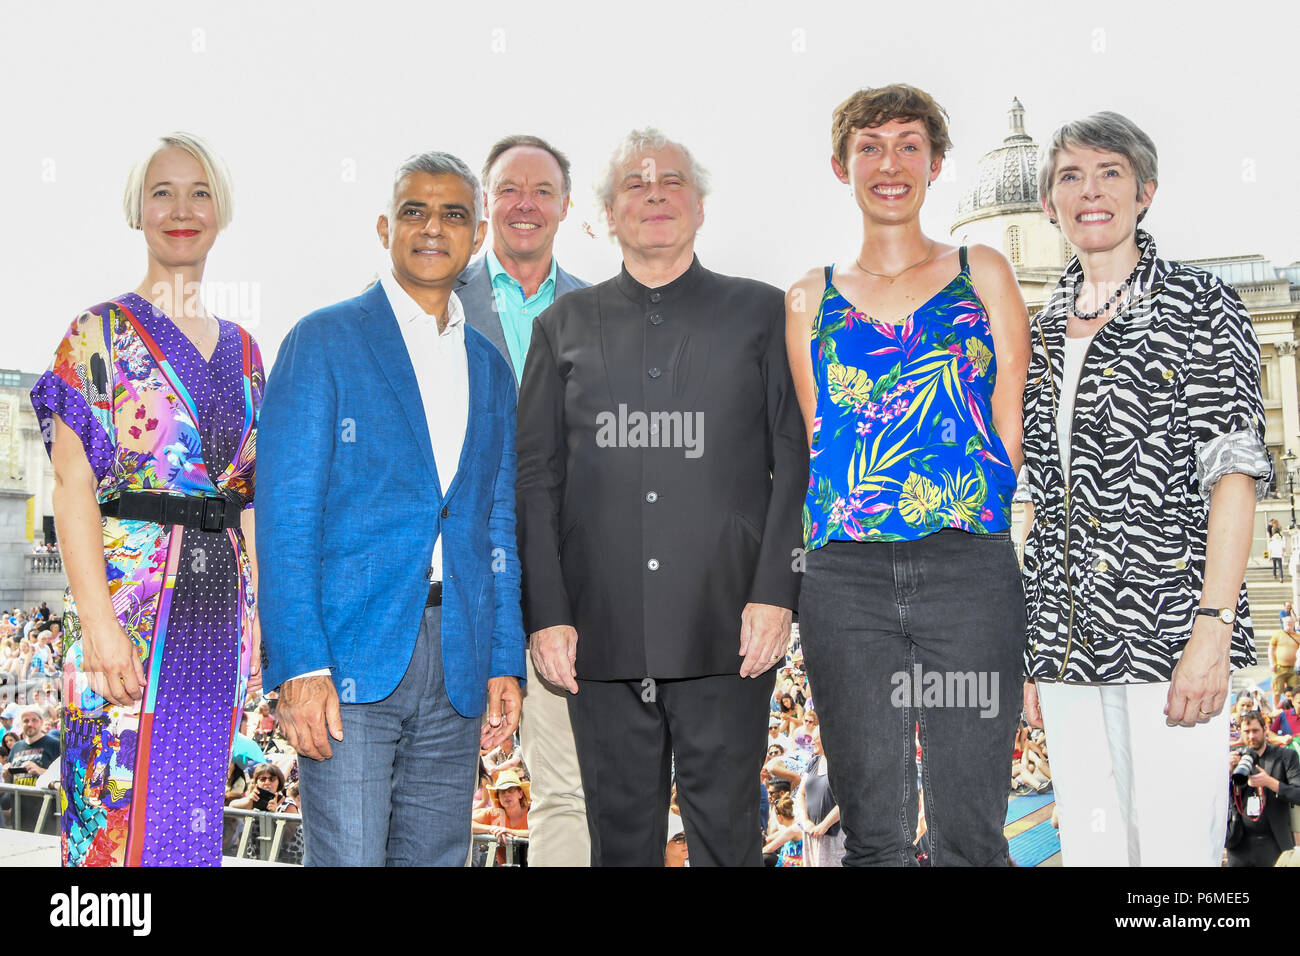 London, UK. 1st July, 2018. Photocall of Sadiq Khan,Sir Simon Rattle, KATE WHITLEY,Kathryn McDowell at the BMW Classics + live streamed on YouTube in Trafalgar Square on a hot weather in London, UK on July 1st 2018. Credit: Picture Capital/Alamy Live News - Stock Image